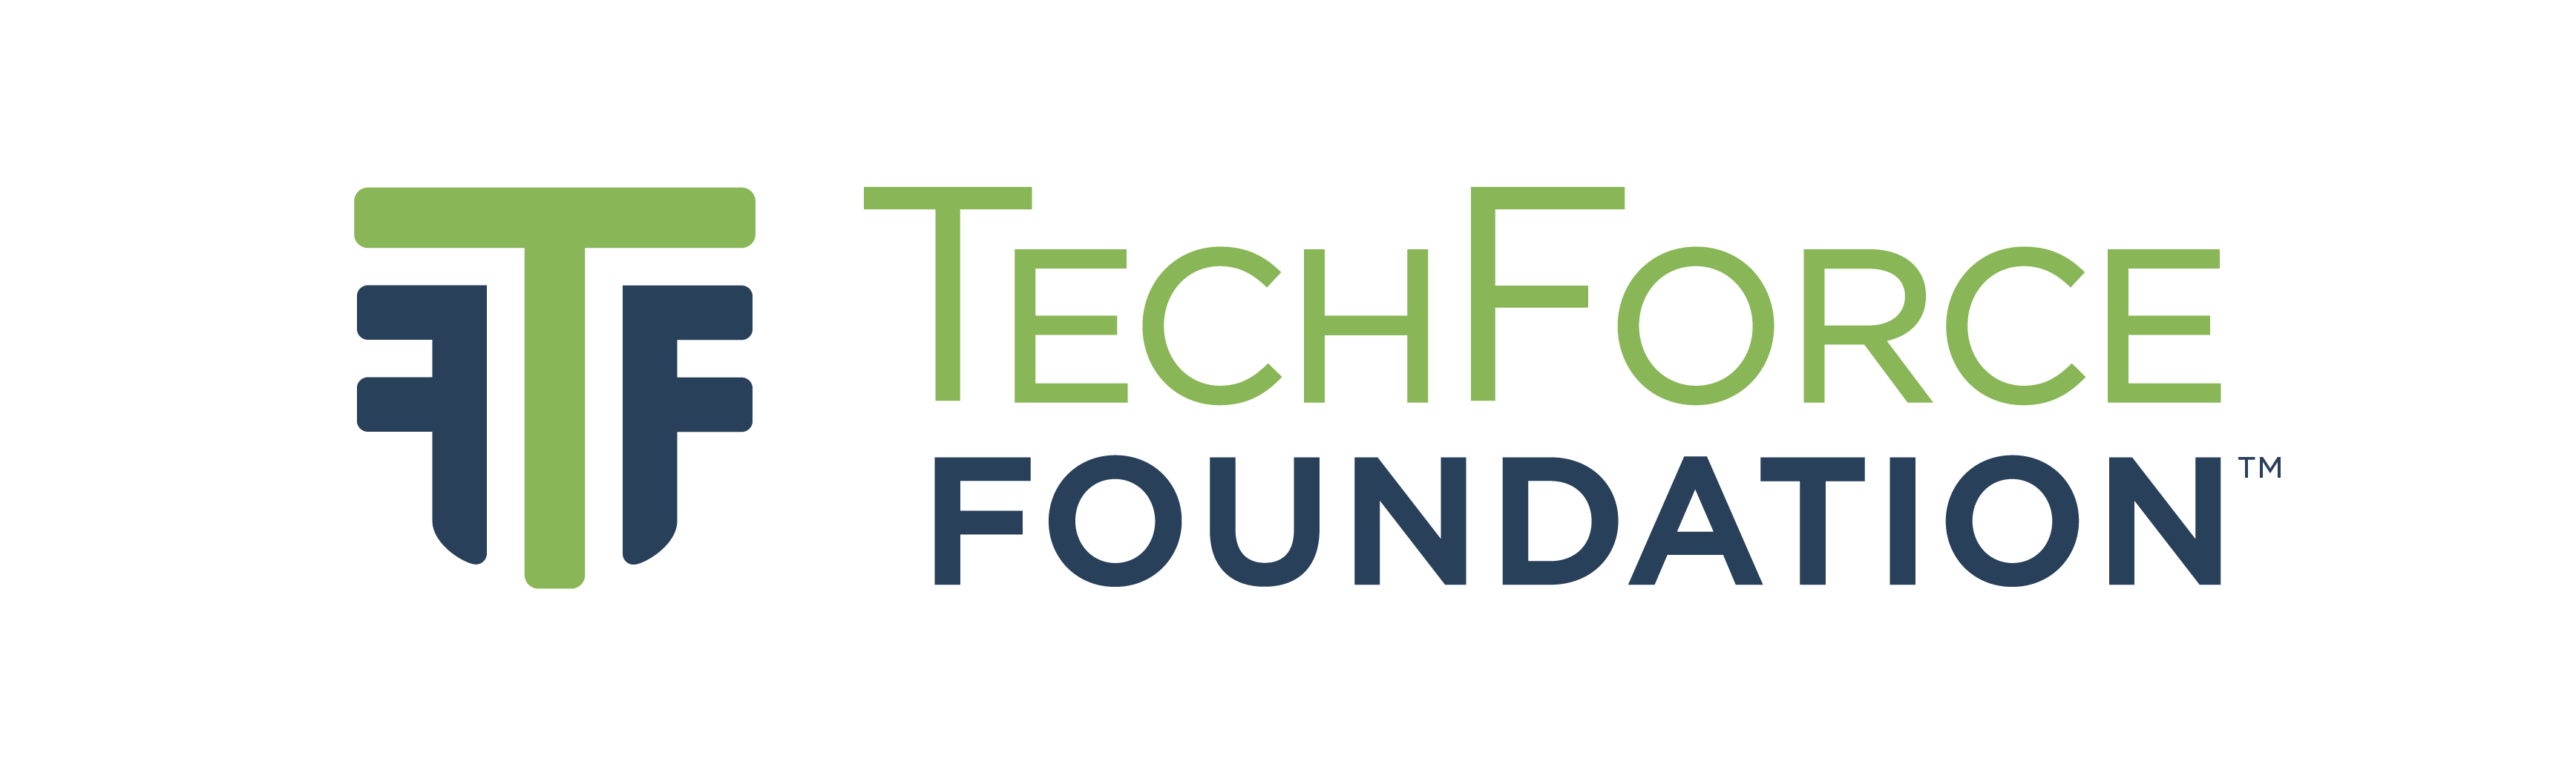 Tech Force Foundation